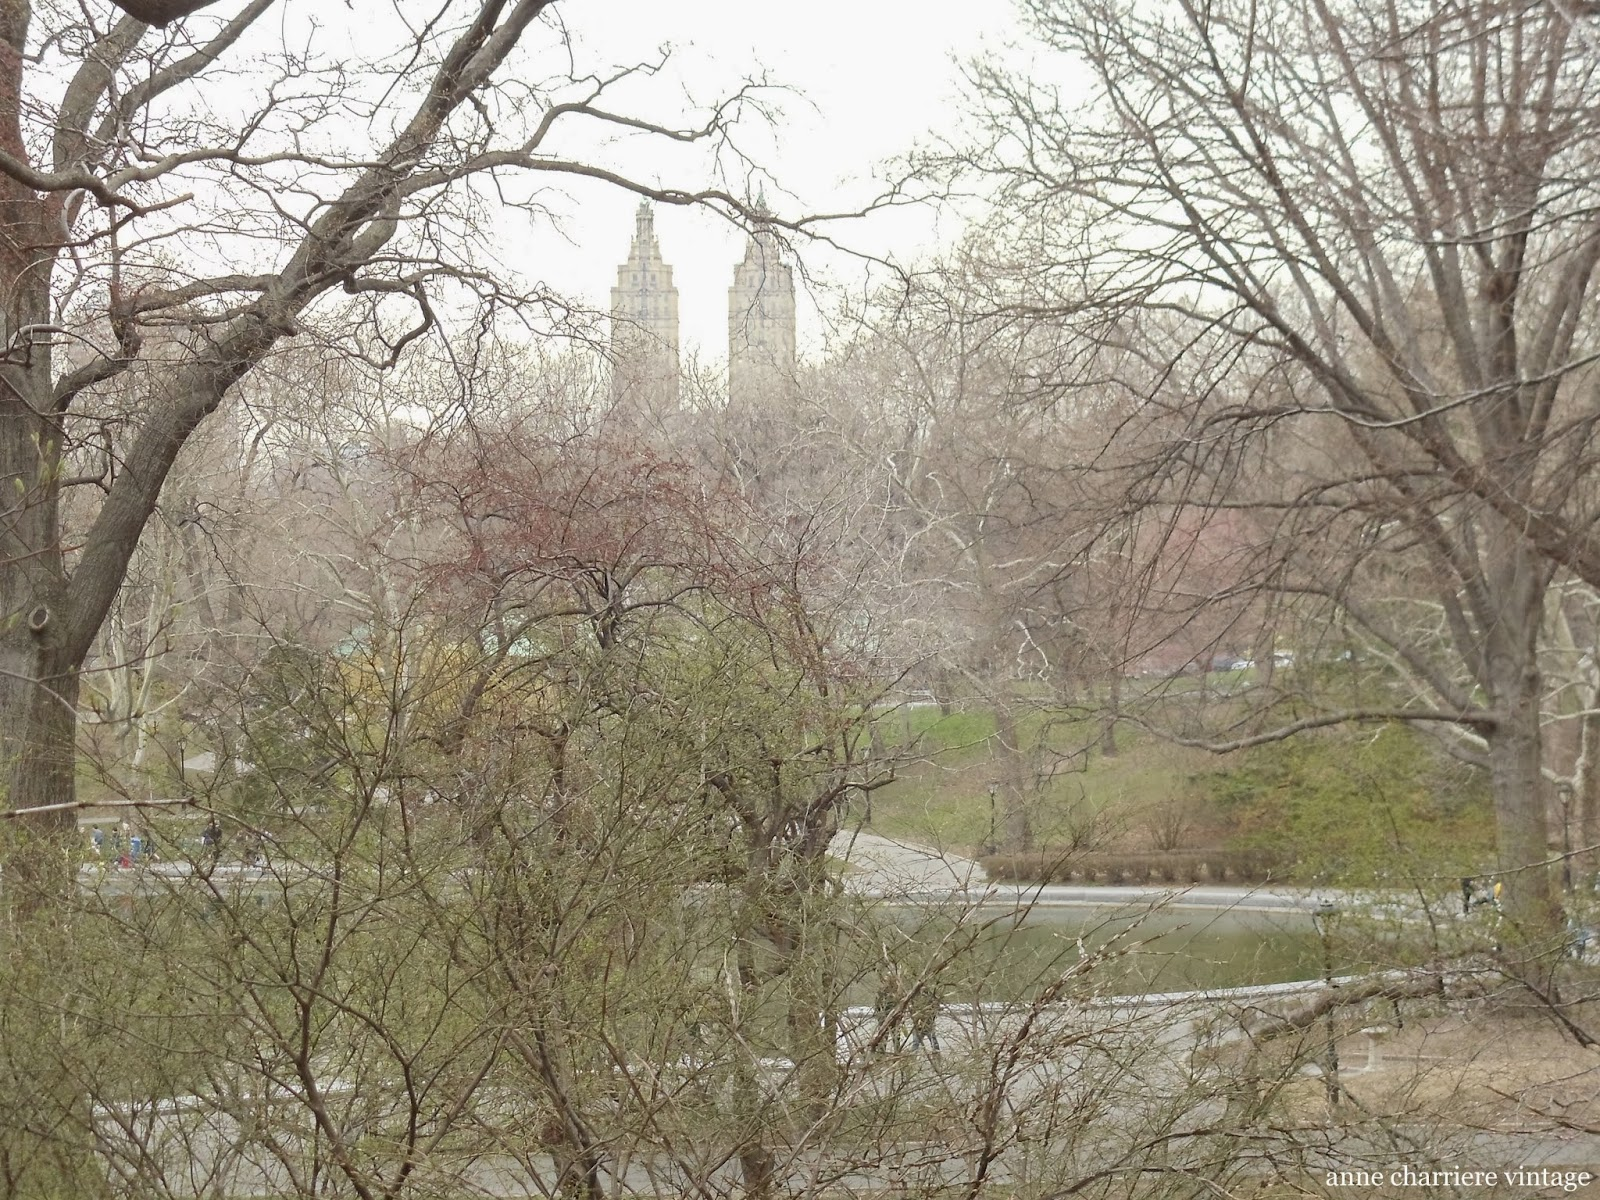 anne charriere voyage, travel photography, new york, central park,